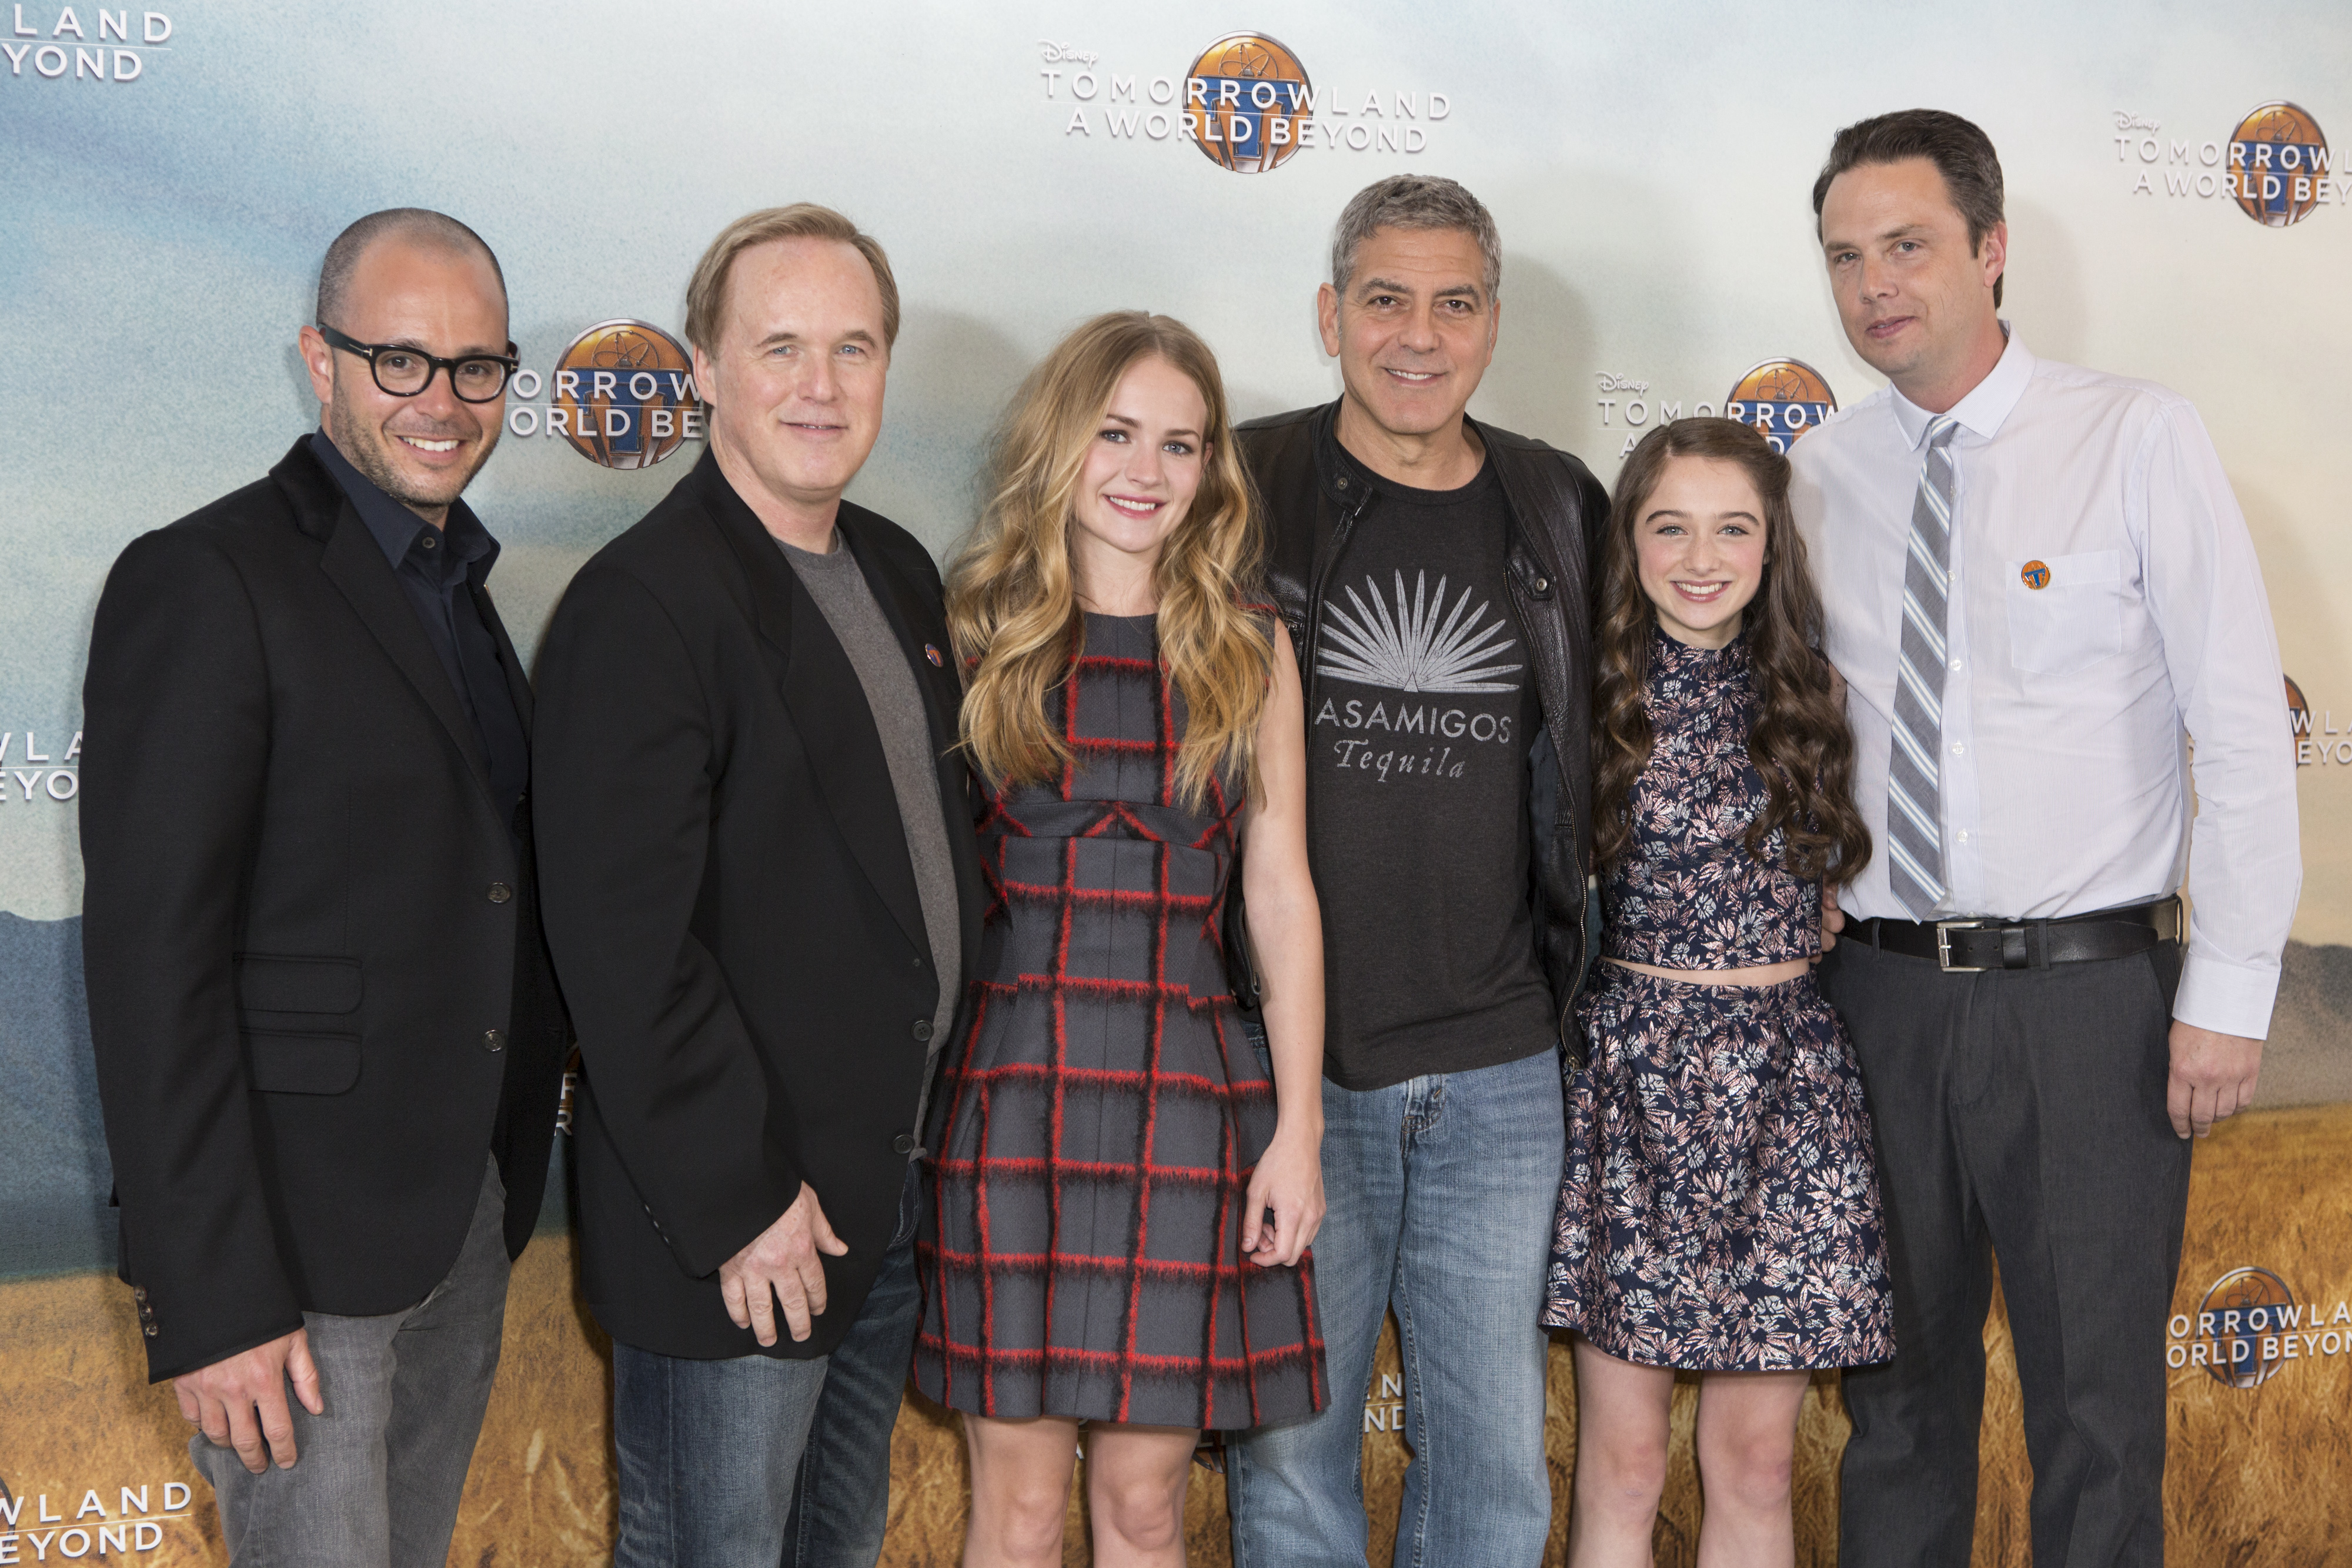 Damon Lindelof, Brad Bird, Britt Robertson, George Clooney, Raffey Cassidy and Jeff Jensen attend the European photo call of Disney?s ?Tomorrowland: A World Beyond? on May 18 in London, UK (Credit: James Gillham/ StingMedia.co.uk